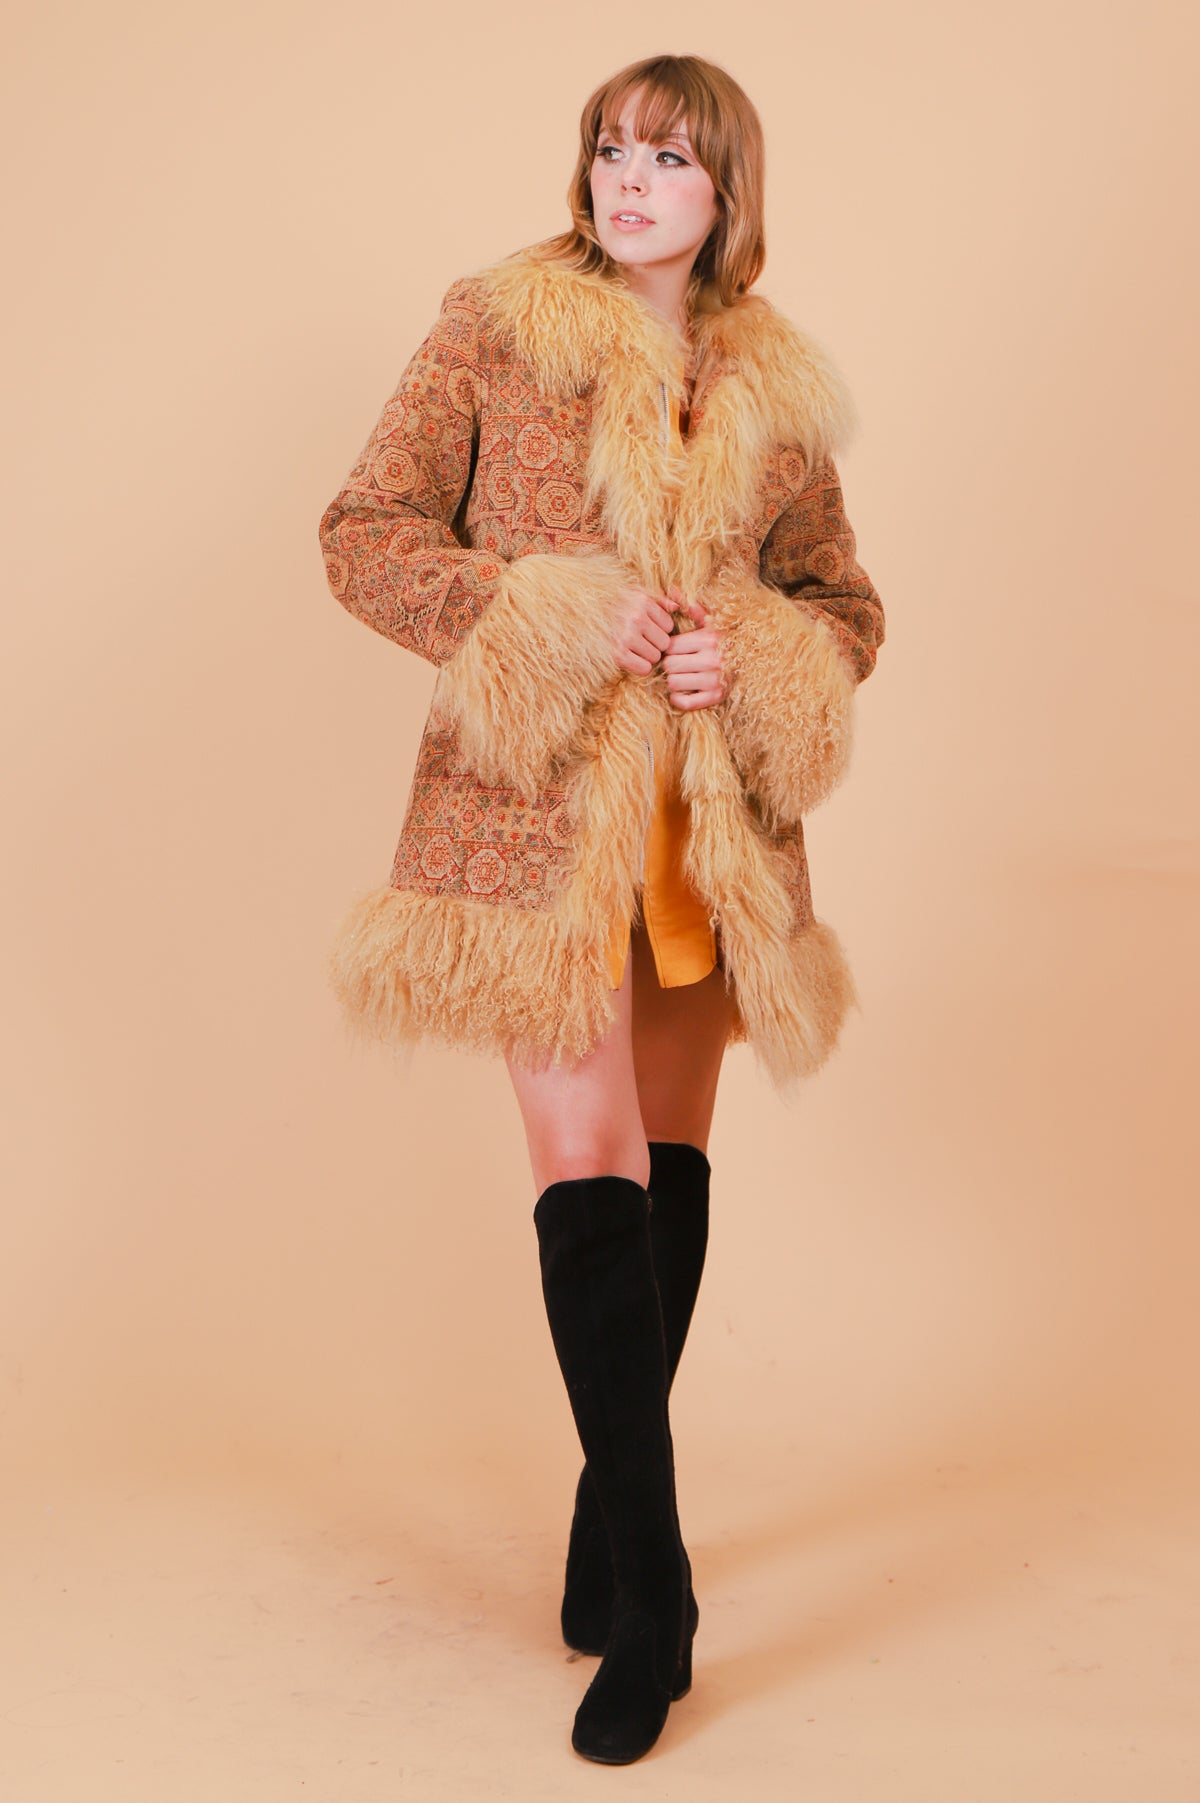 Vintage 1970's Harvest Moon Tapestry Fur Coat